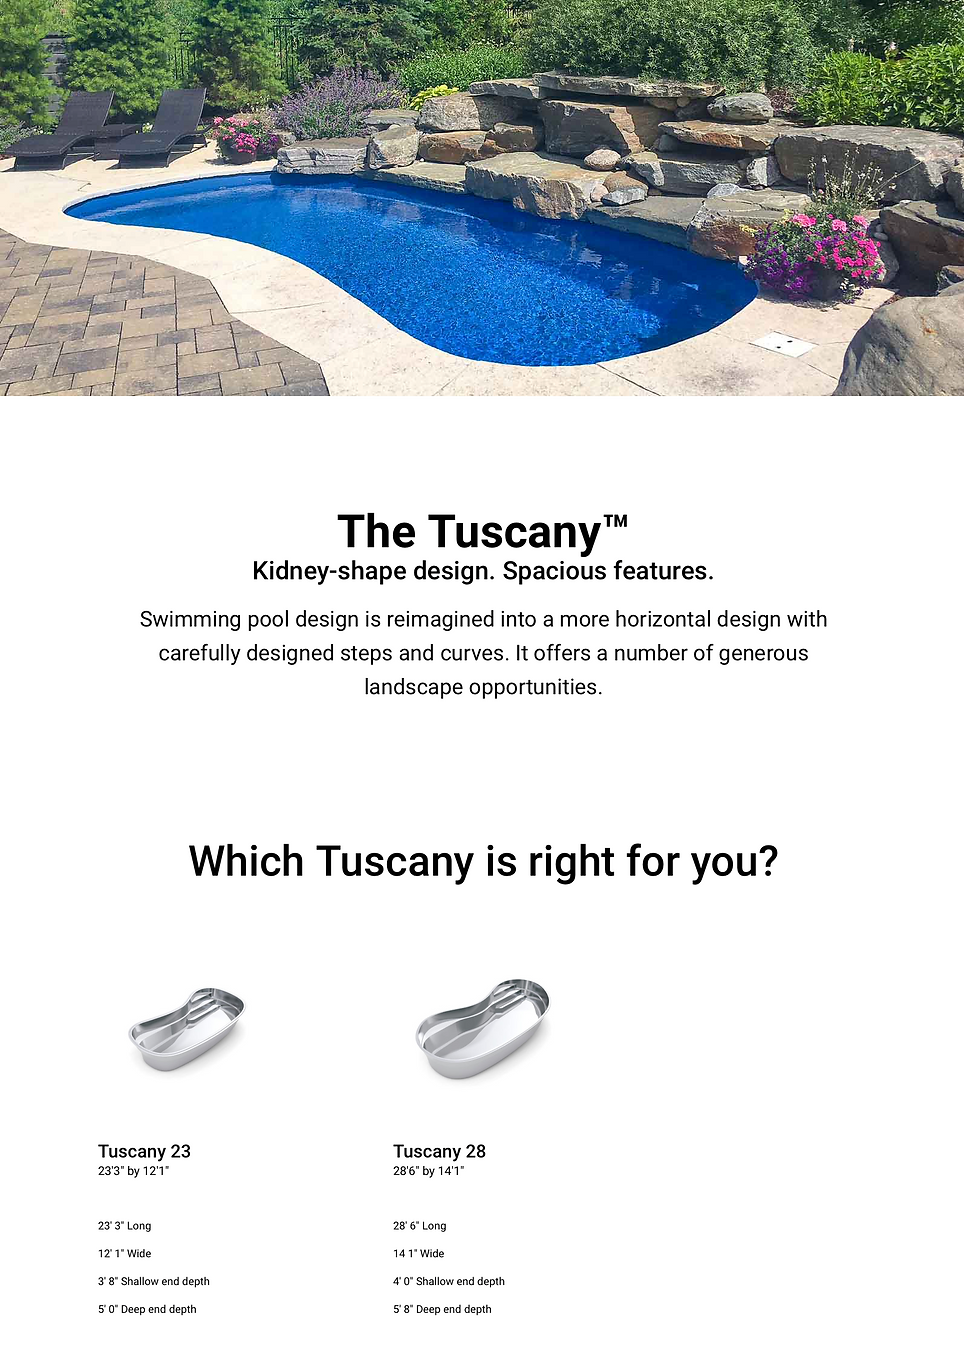 The Tuscany Design.png